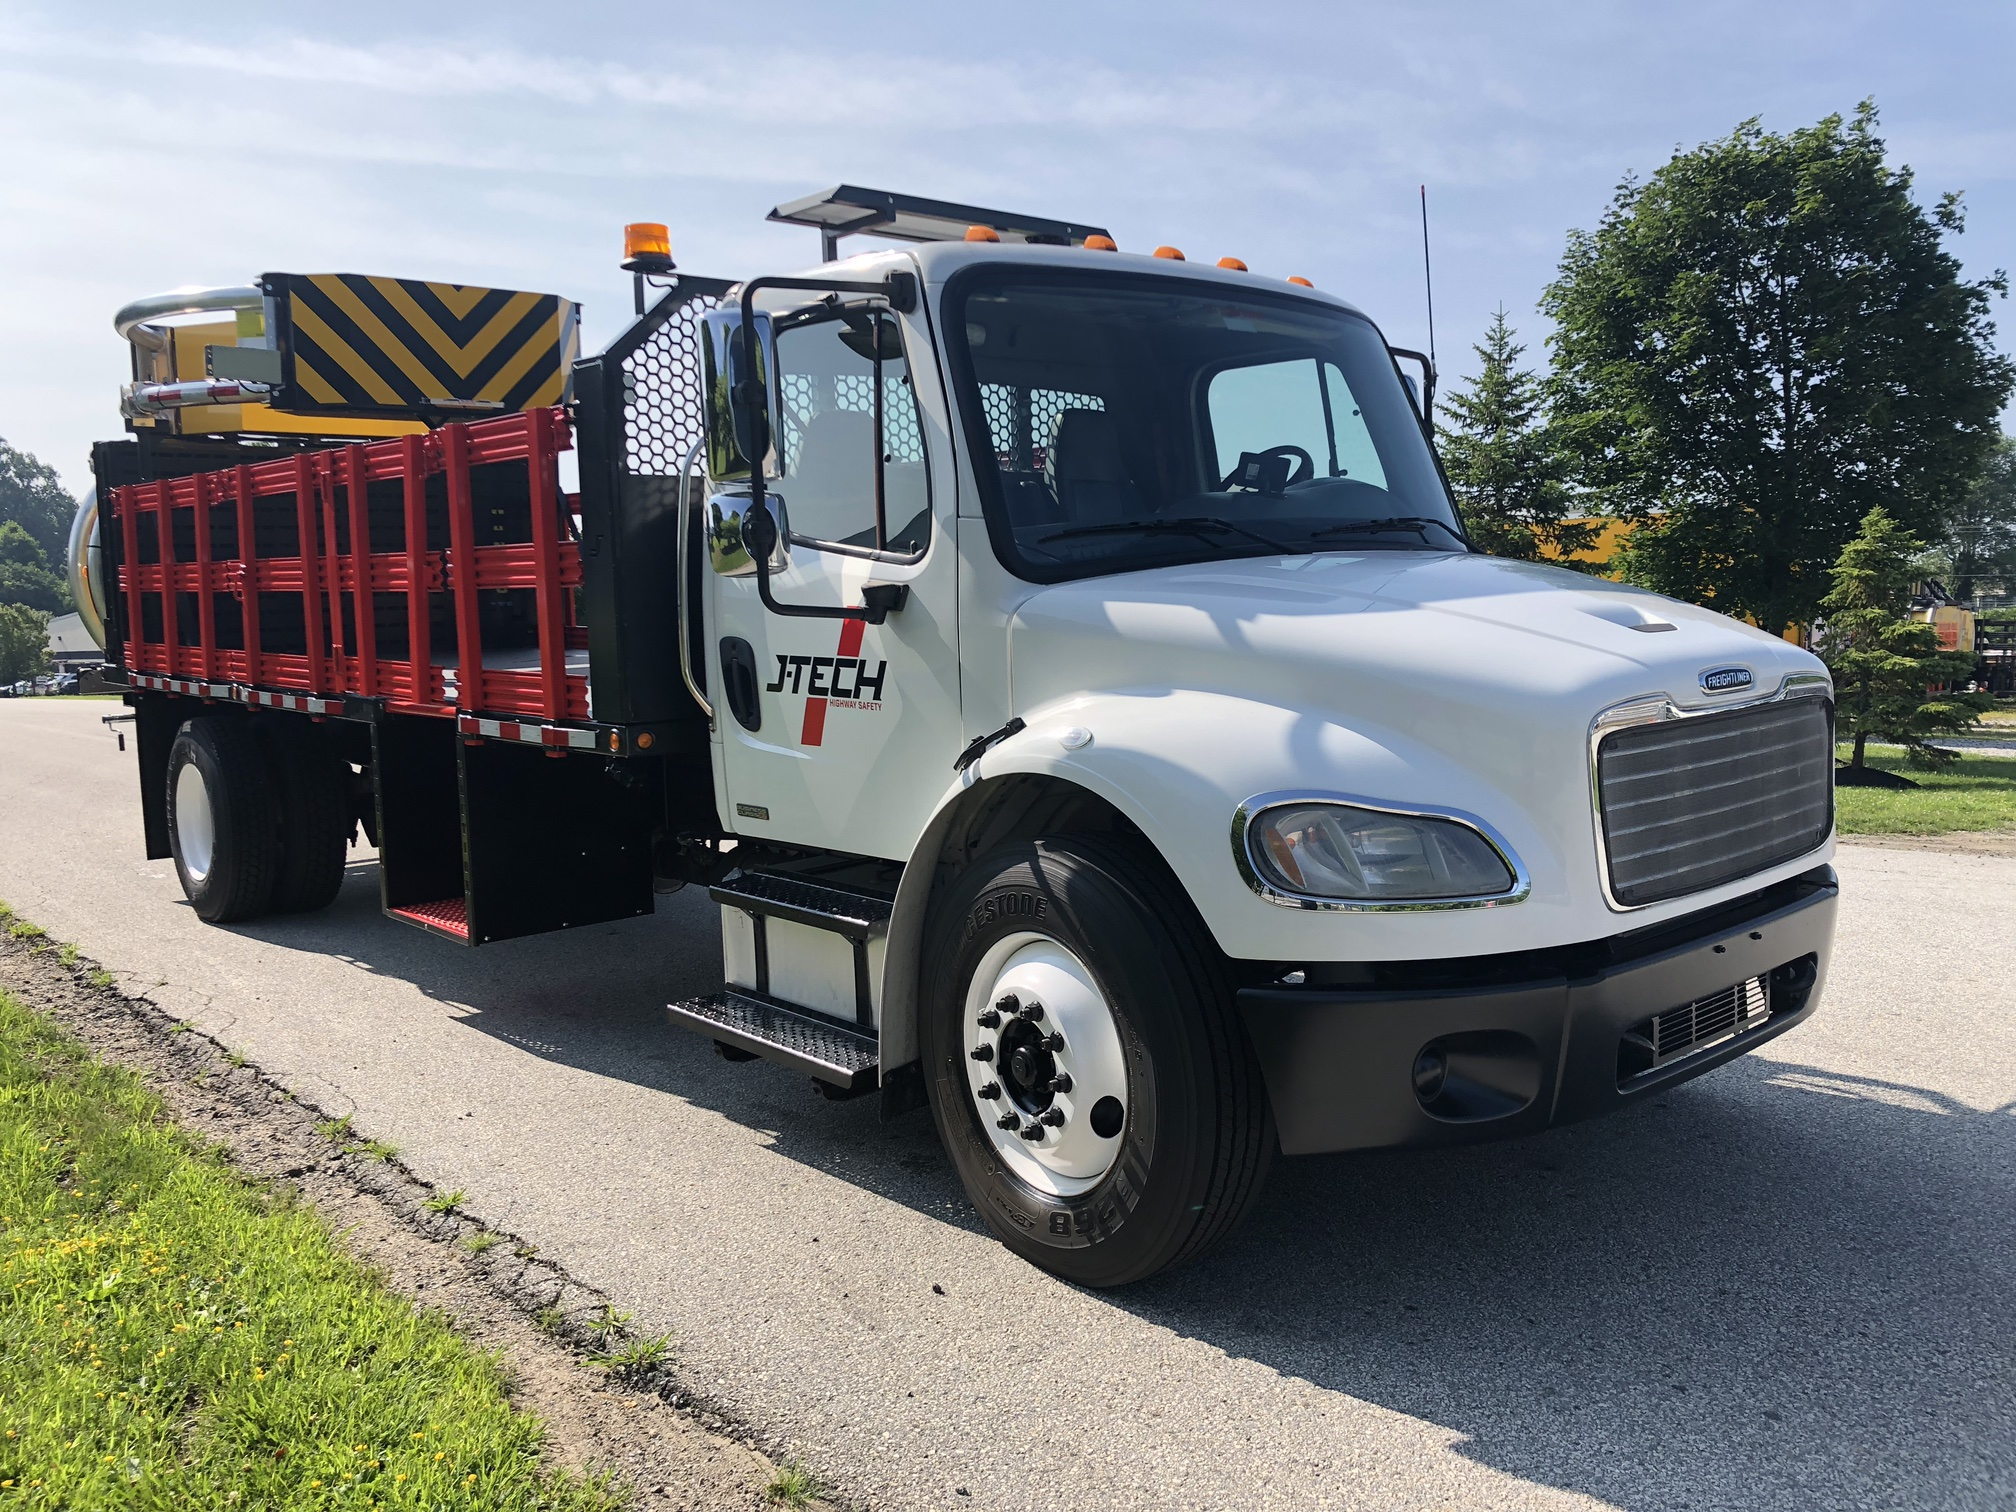 2012 Freightliner M2 Attenuator Truck For Sale and Rent J-Tech